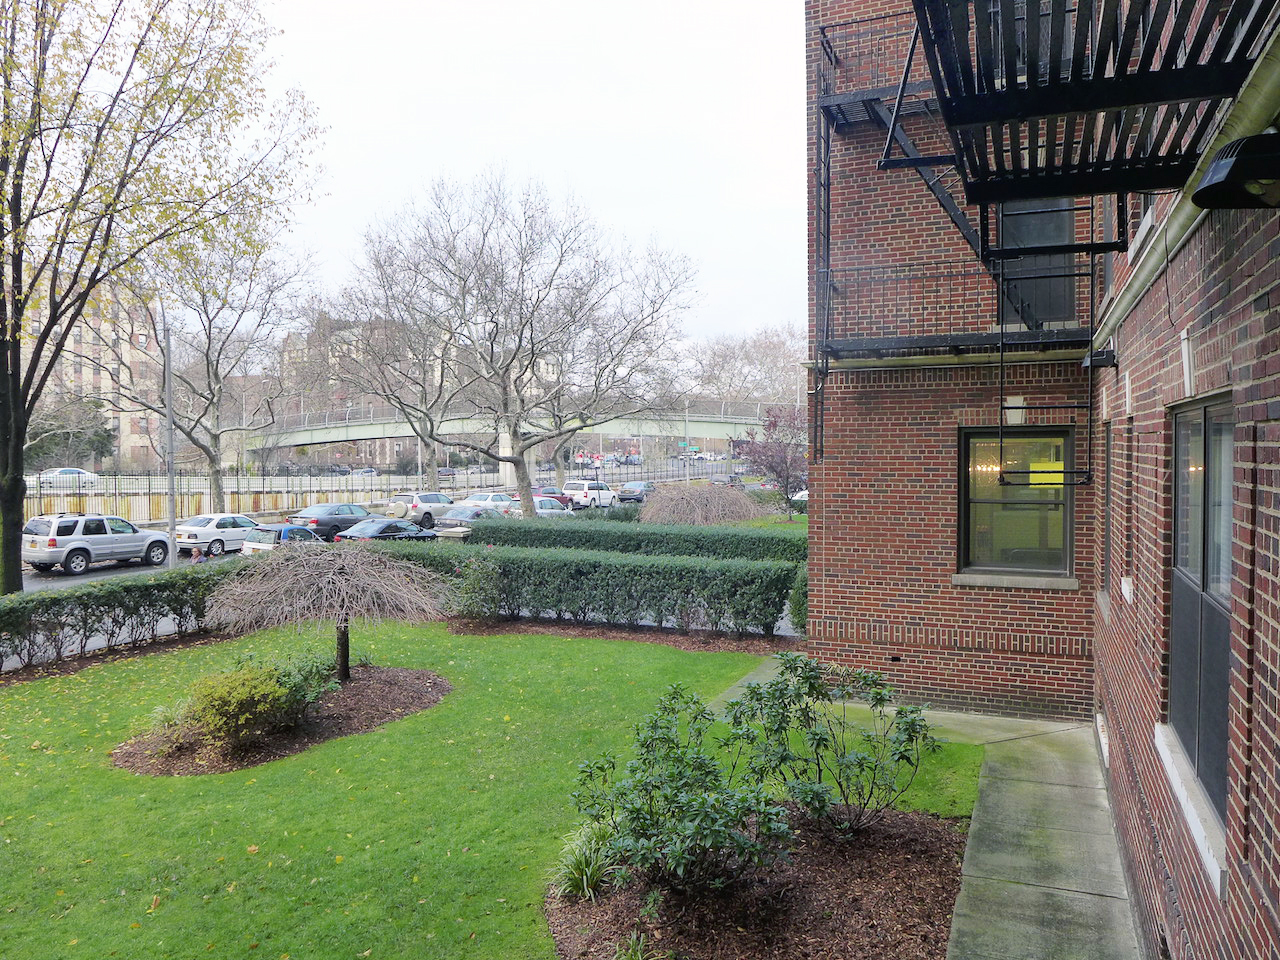 View of the front lawn of 31 Ocean Parkway, with cars parked on the street facing a walking bridge. MEP designed by 2L Engineering.